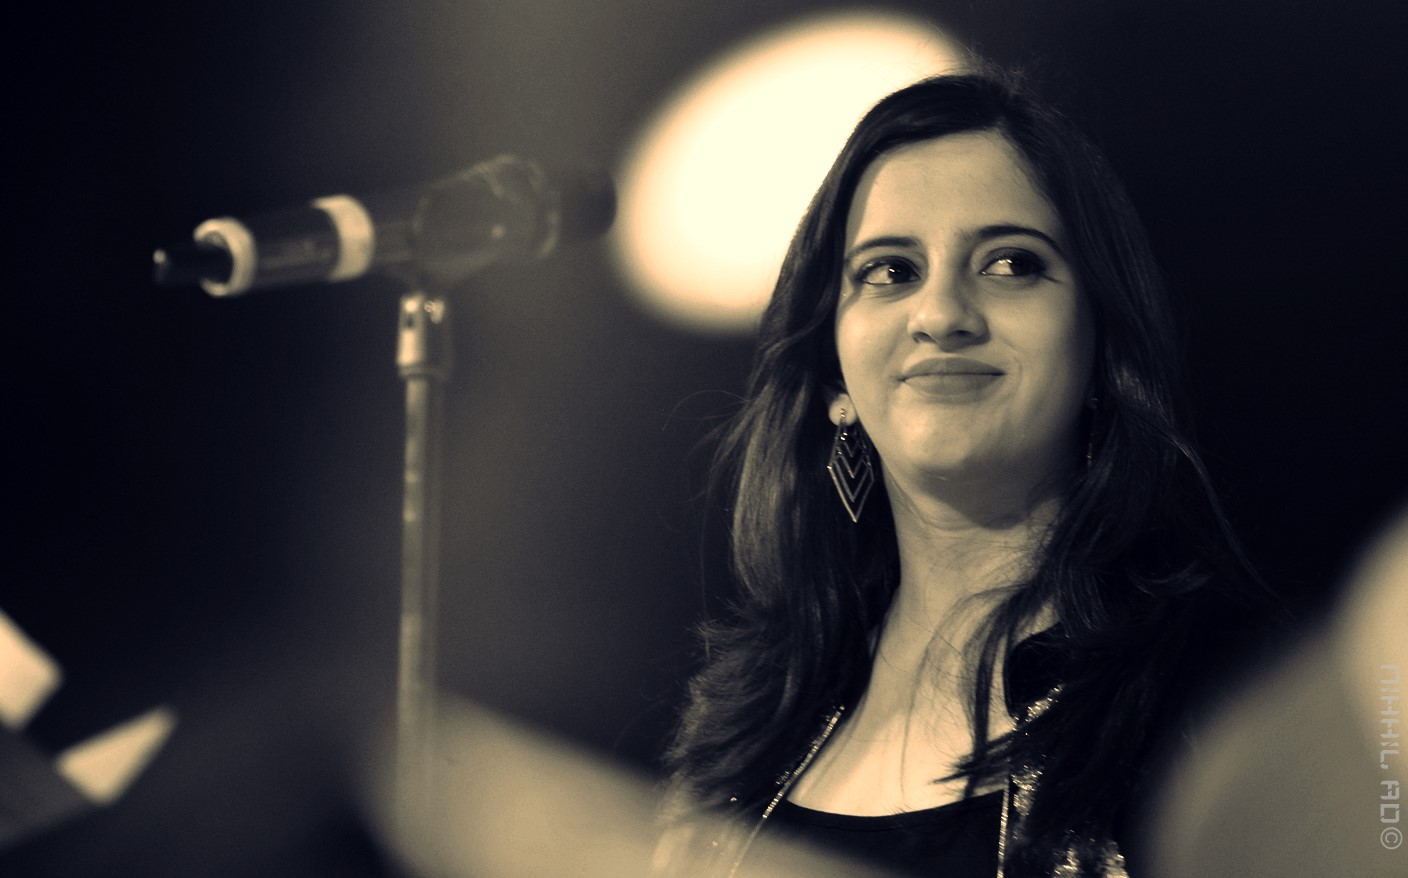 I feel blessed to be a part of the Shankar Mahadevan team: Shrinidhi Ghatate